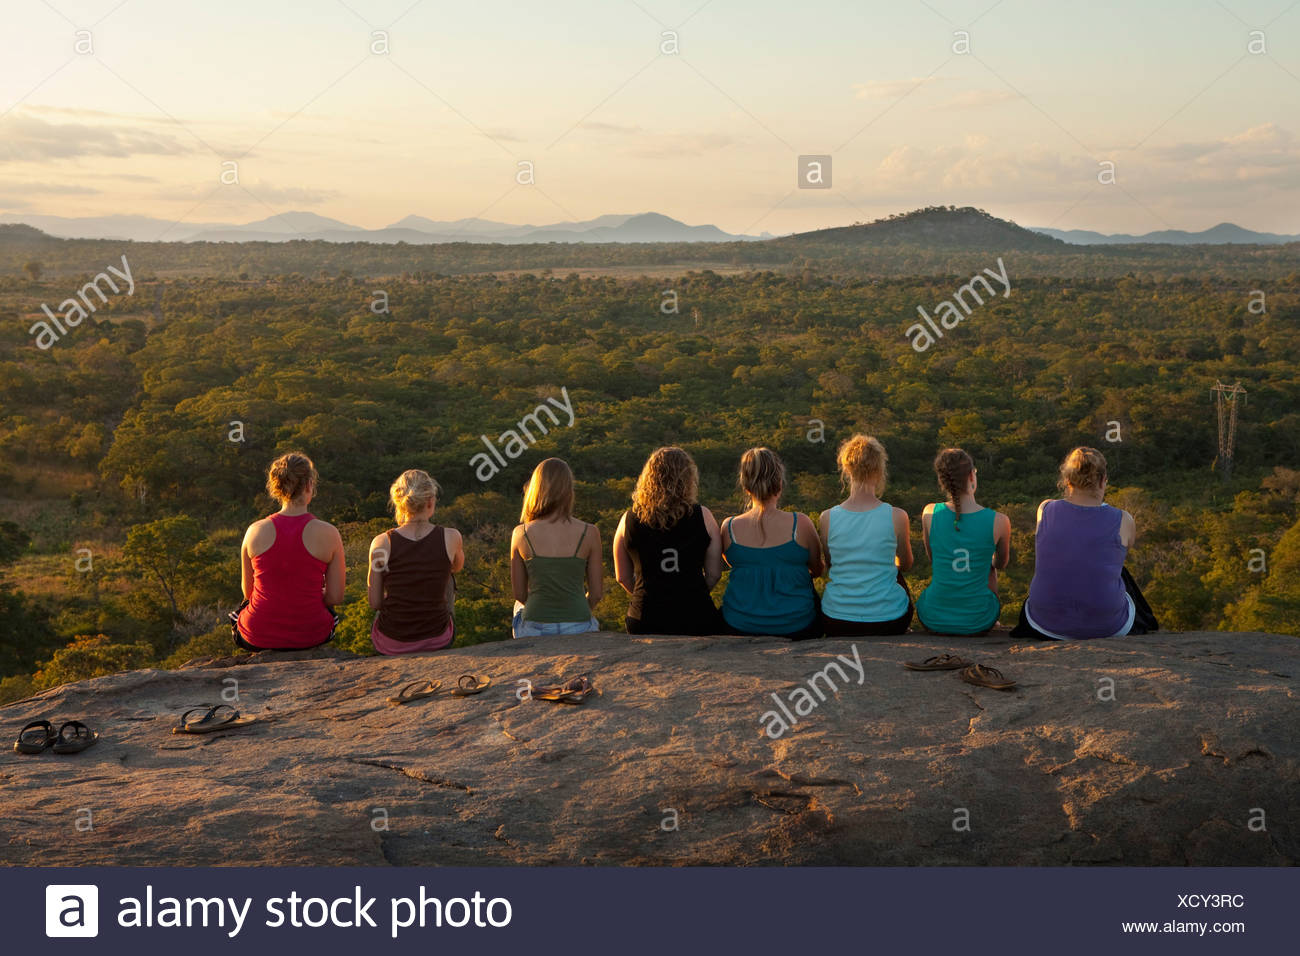 A Row Of Young Women Sitting On A Rock Ledge Viewing The African Landscape; Manica, Mozambique, Africa - Stock Image